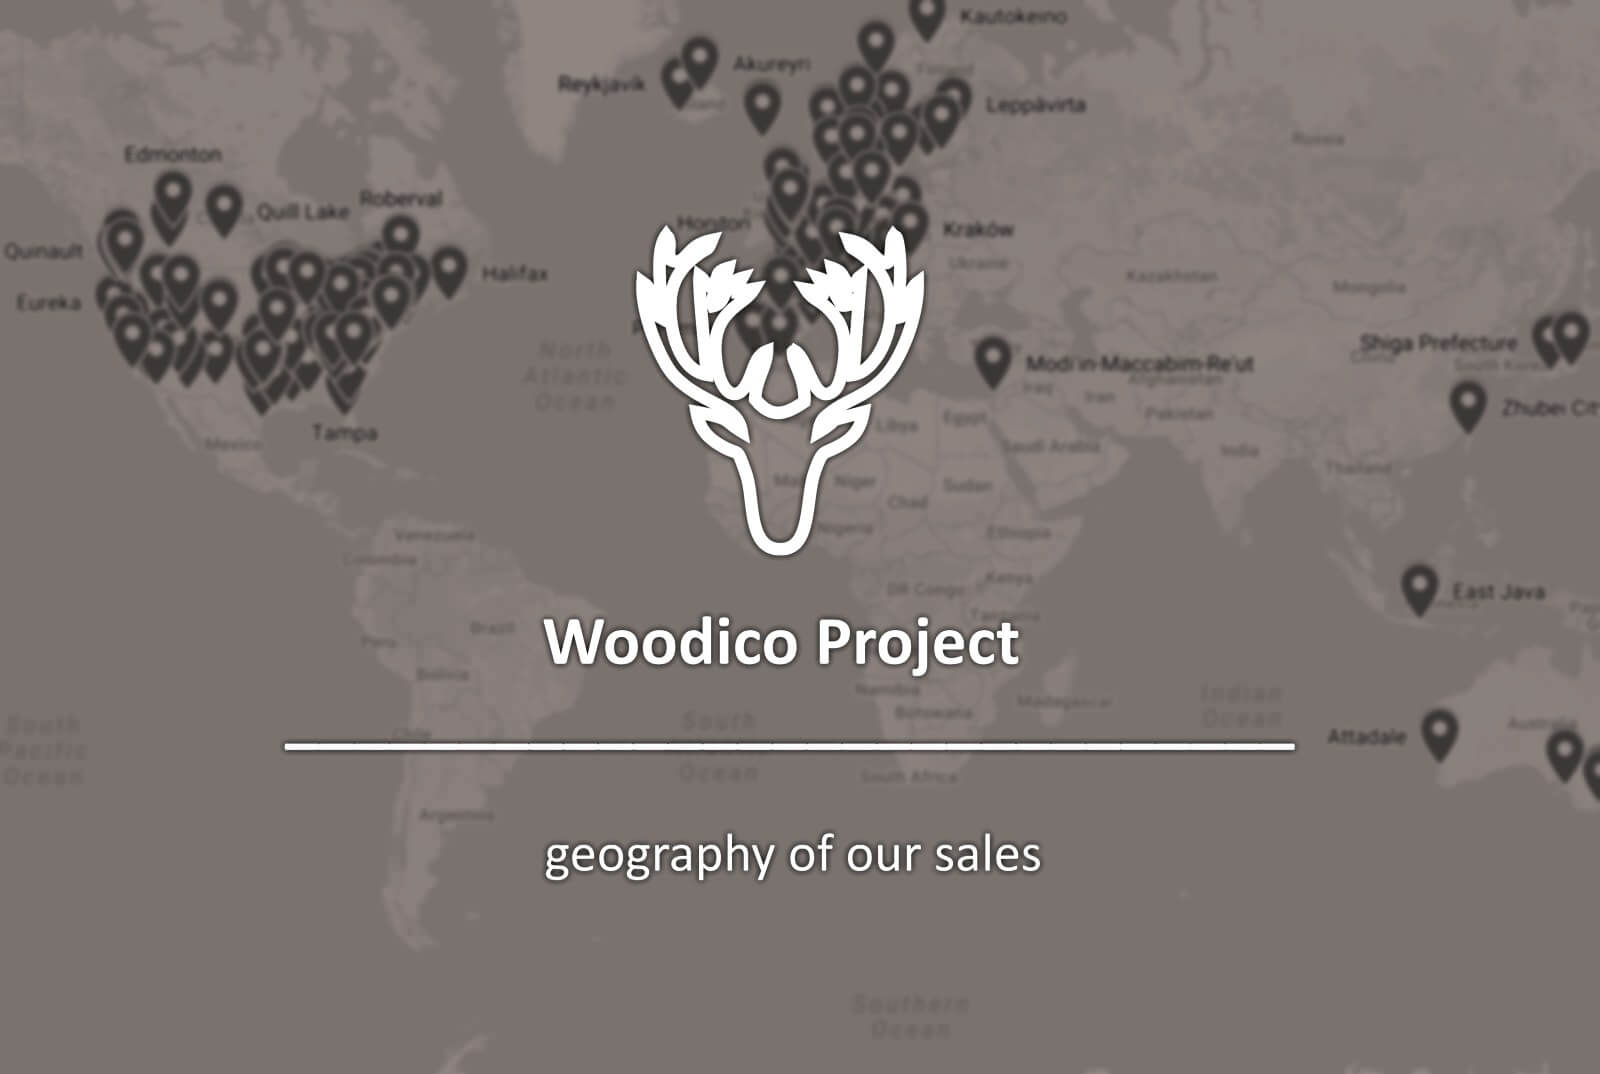 woodico.pro worldwide shipping - Worldwide shipping